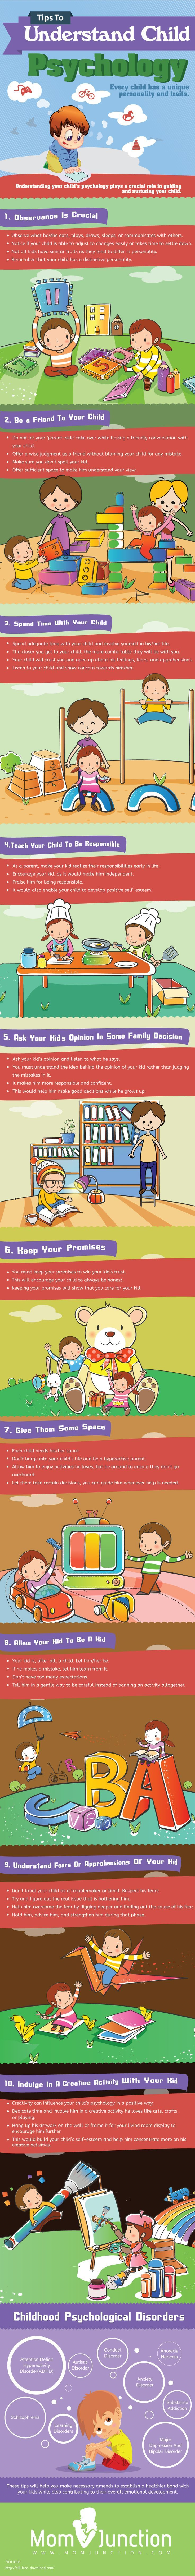 How To Understand Child's Psychology? #Infographic                                                                                                                                                                                 More